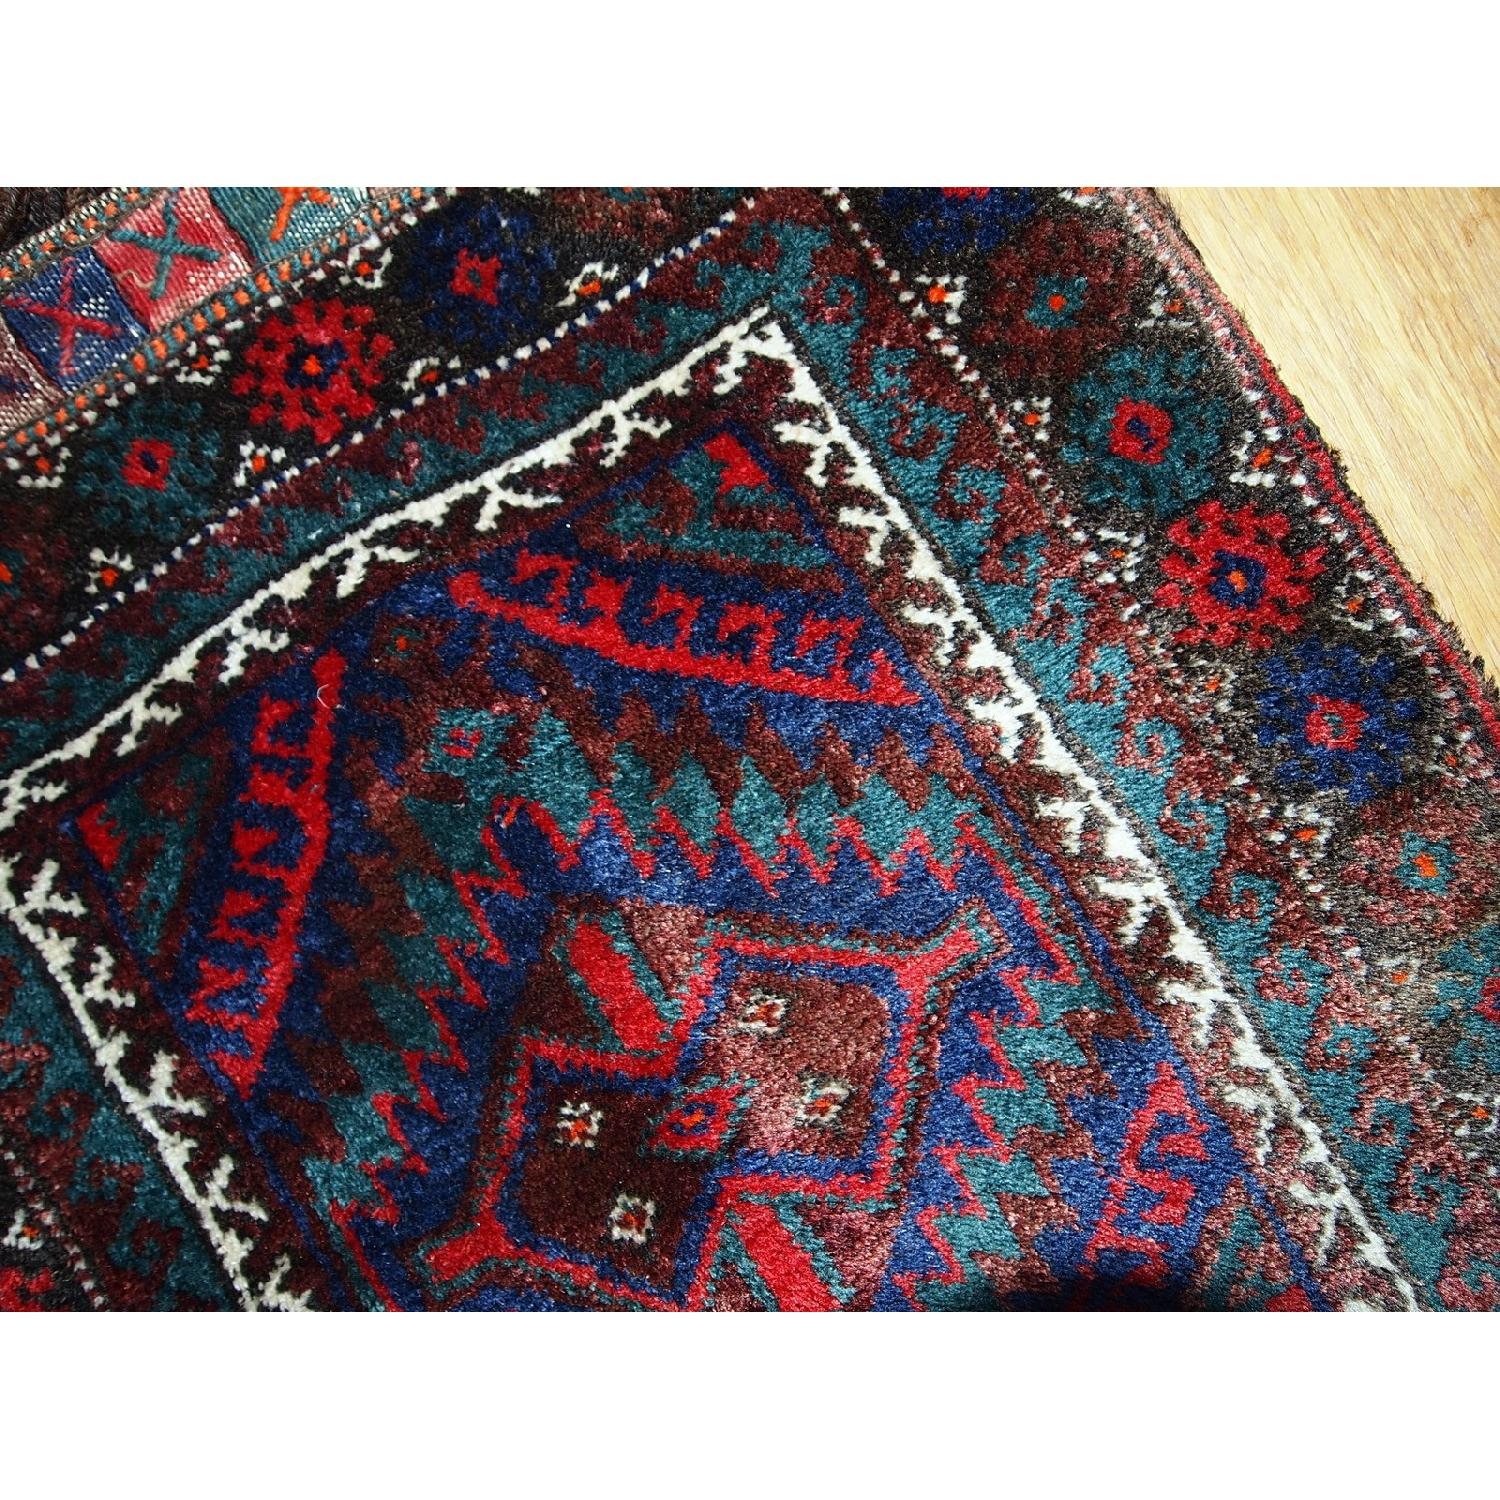 Antique Handmade Persian Kurdish Salt Bag Rug-9